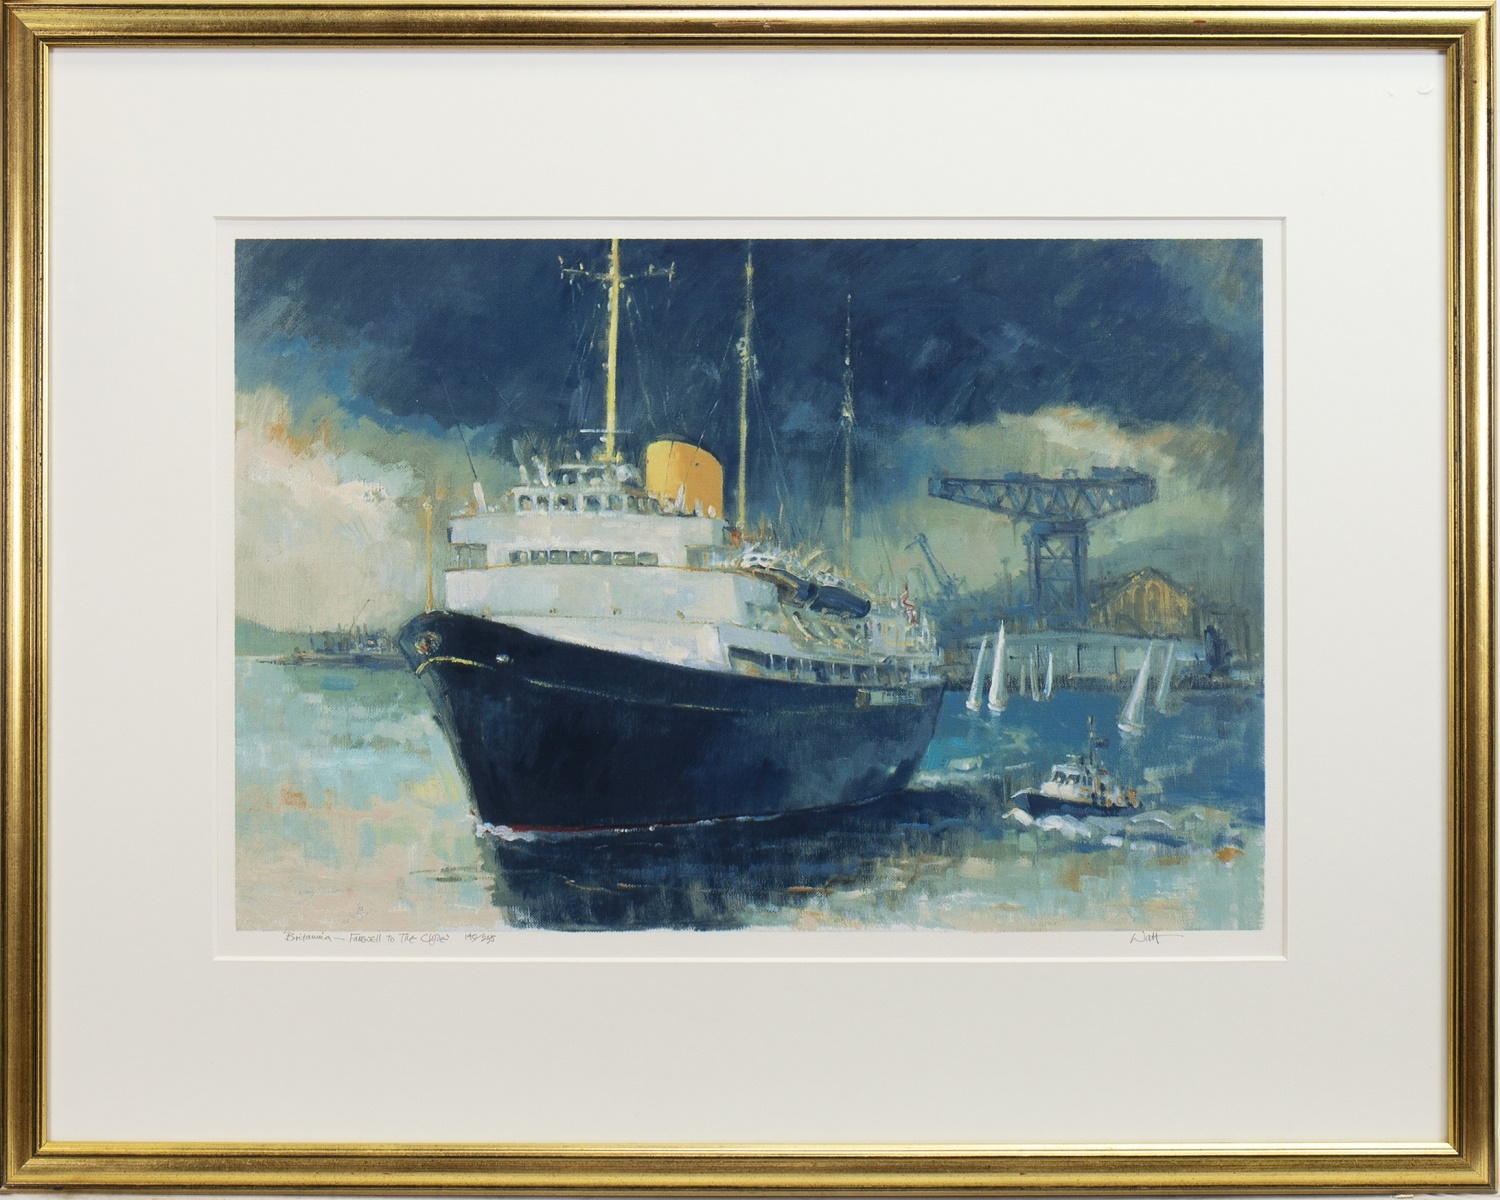 Lot 30 - BRITANNIA, FAREWELL TO THE CLYDE, A SIGNED LIMITED EDITION PRINT BY JAMES WATT